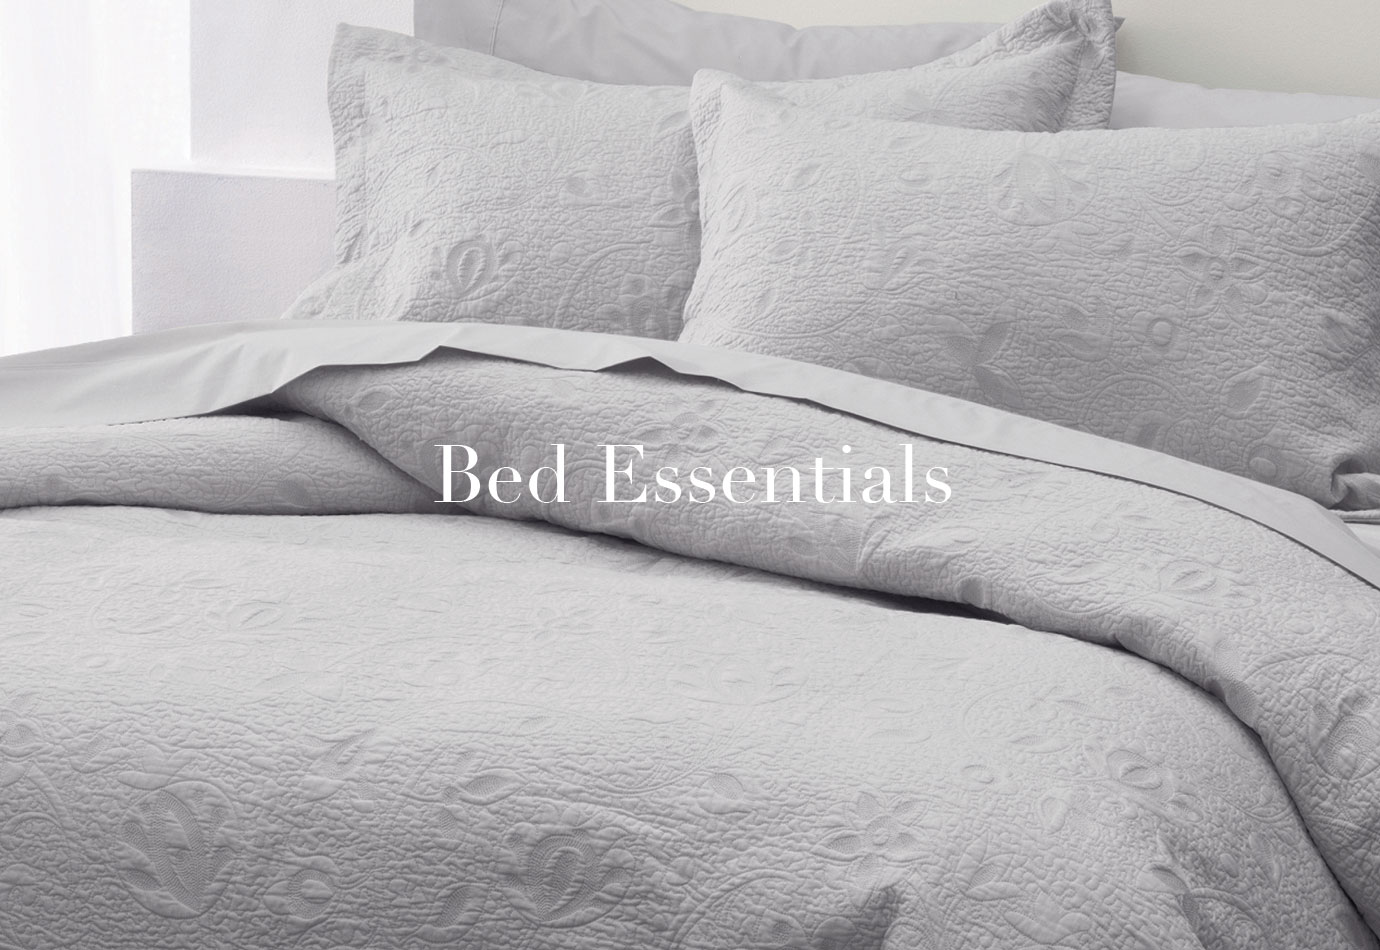 Bed Essentials